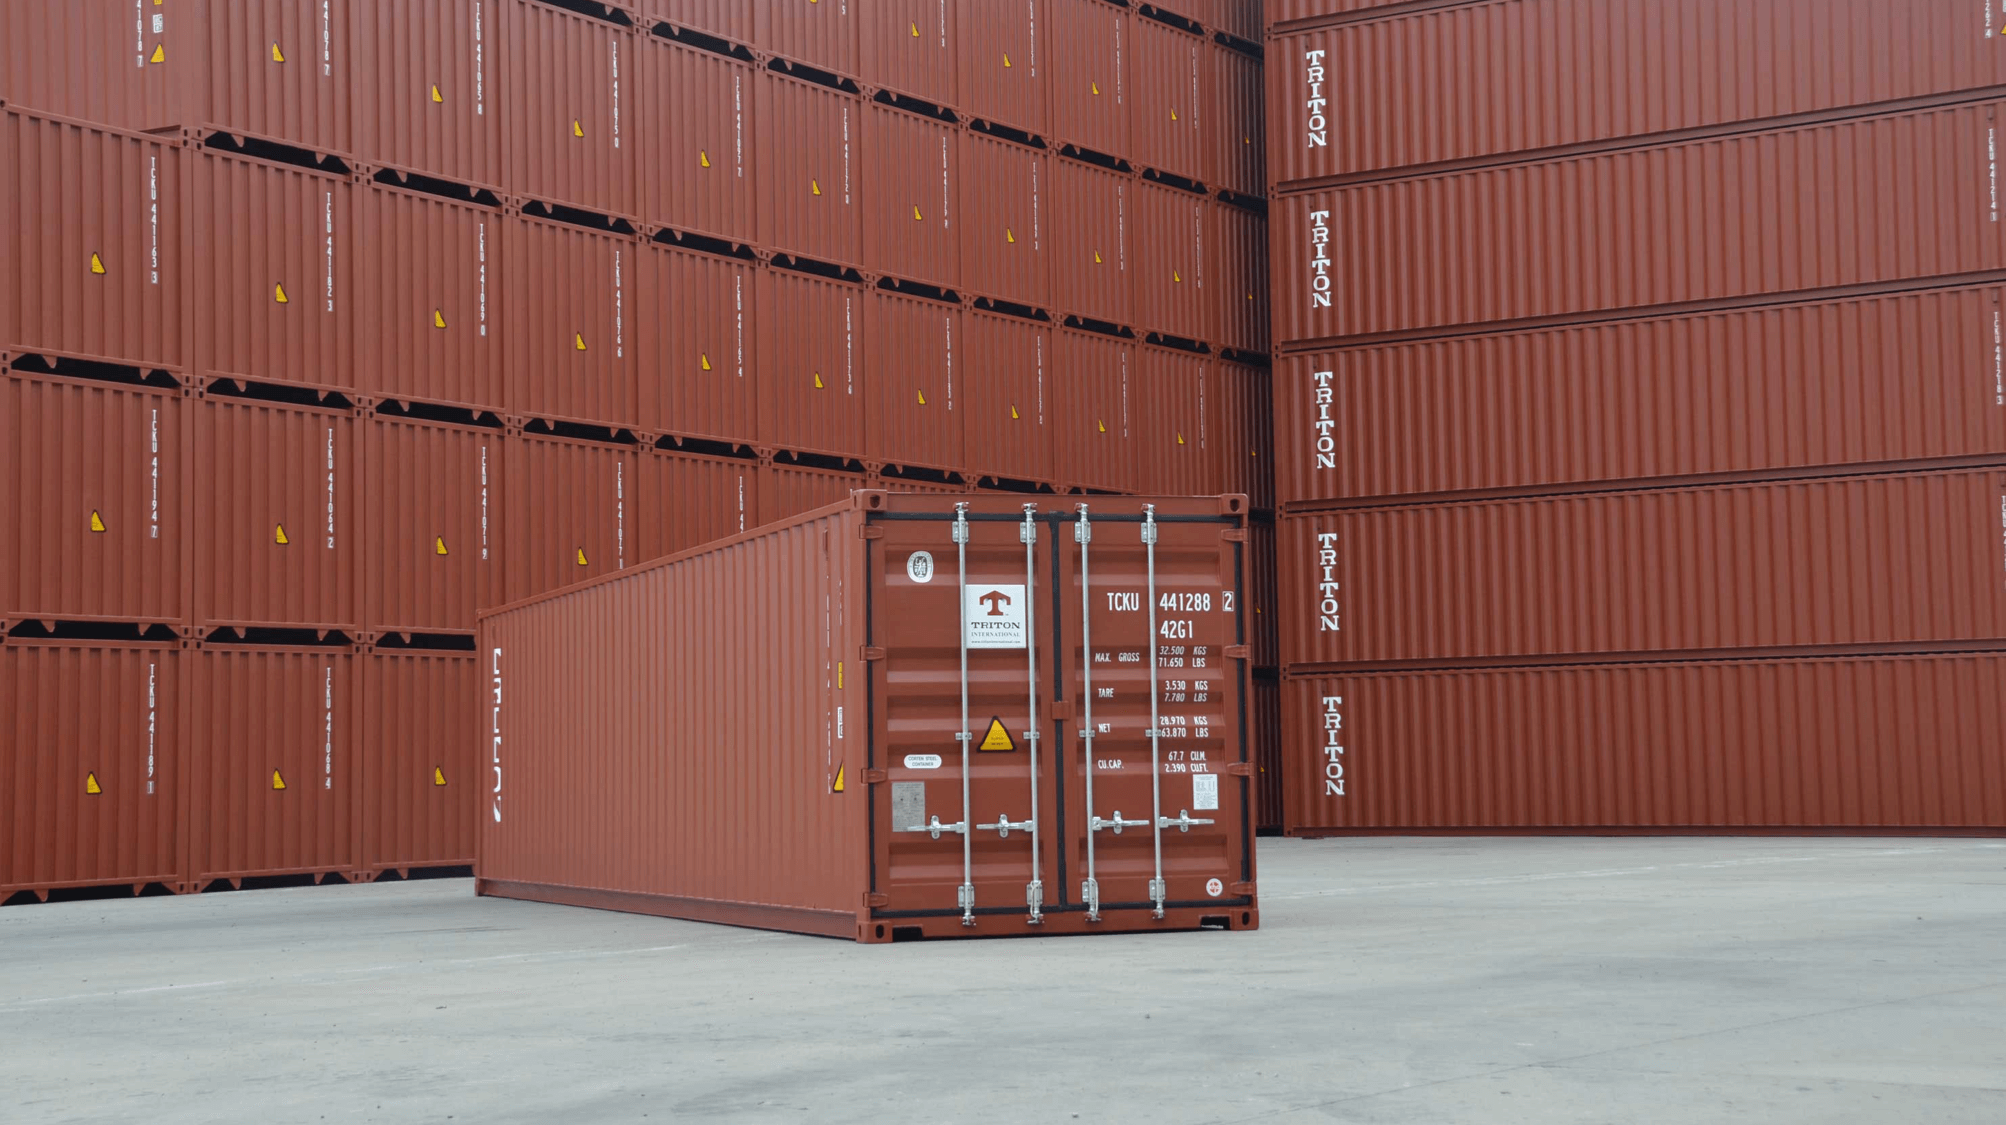 Top 10 Container Leasing Companies in 2019 (Ranking)